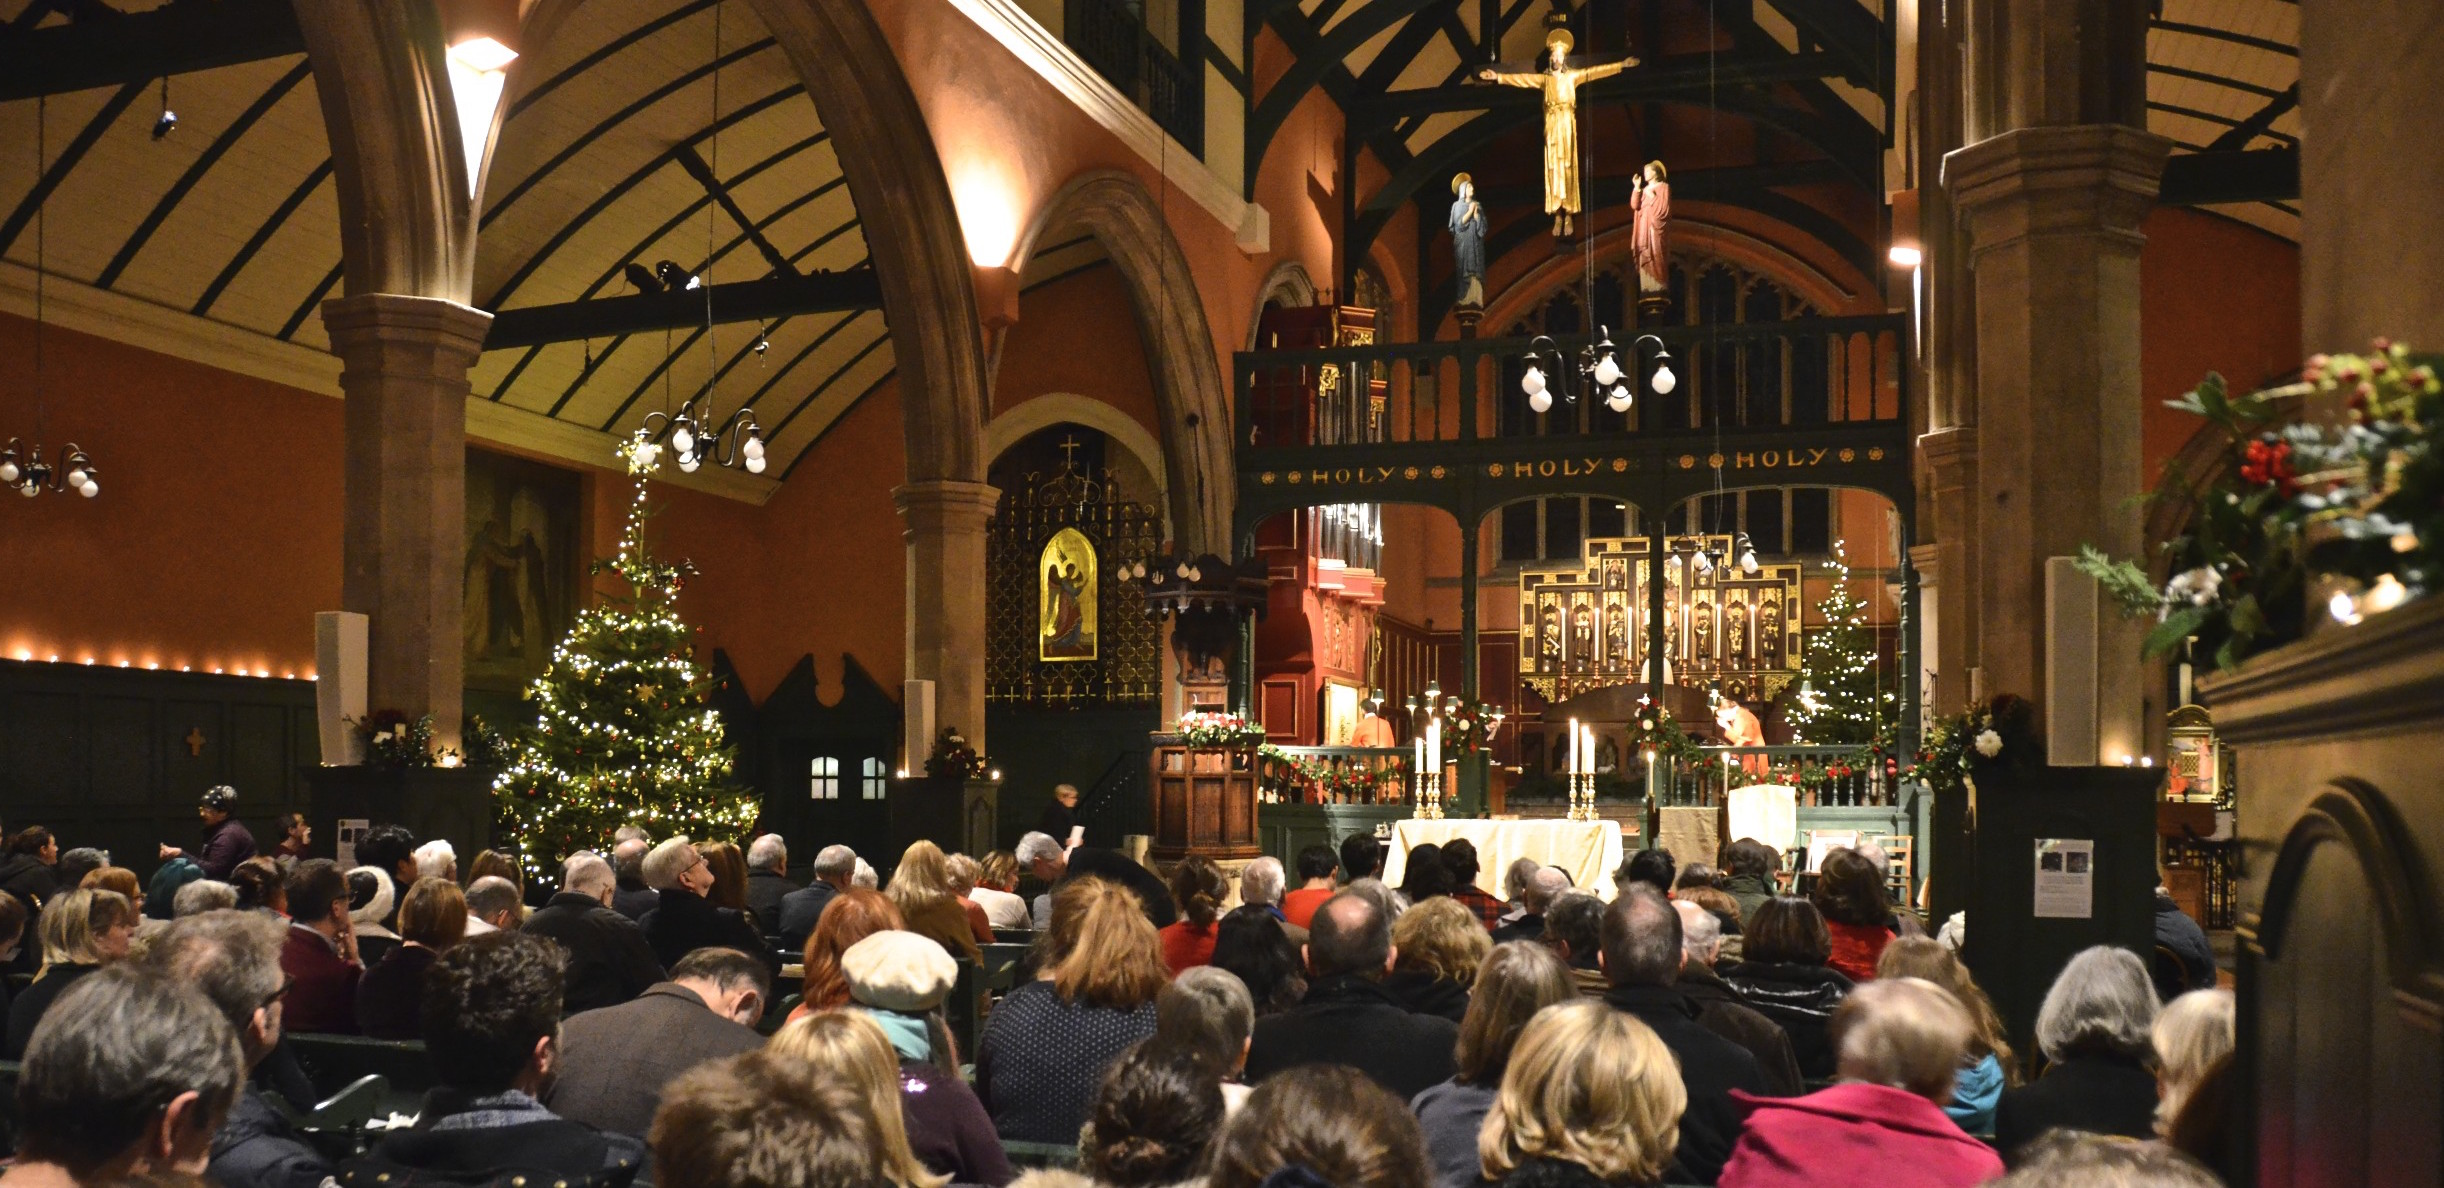 midnight-mass-2015-full-church-23524553783_2e3c4d6ccb_o-crop